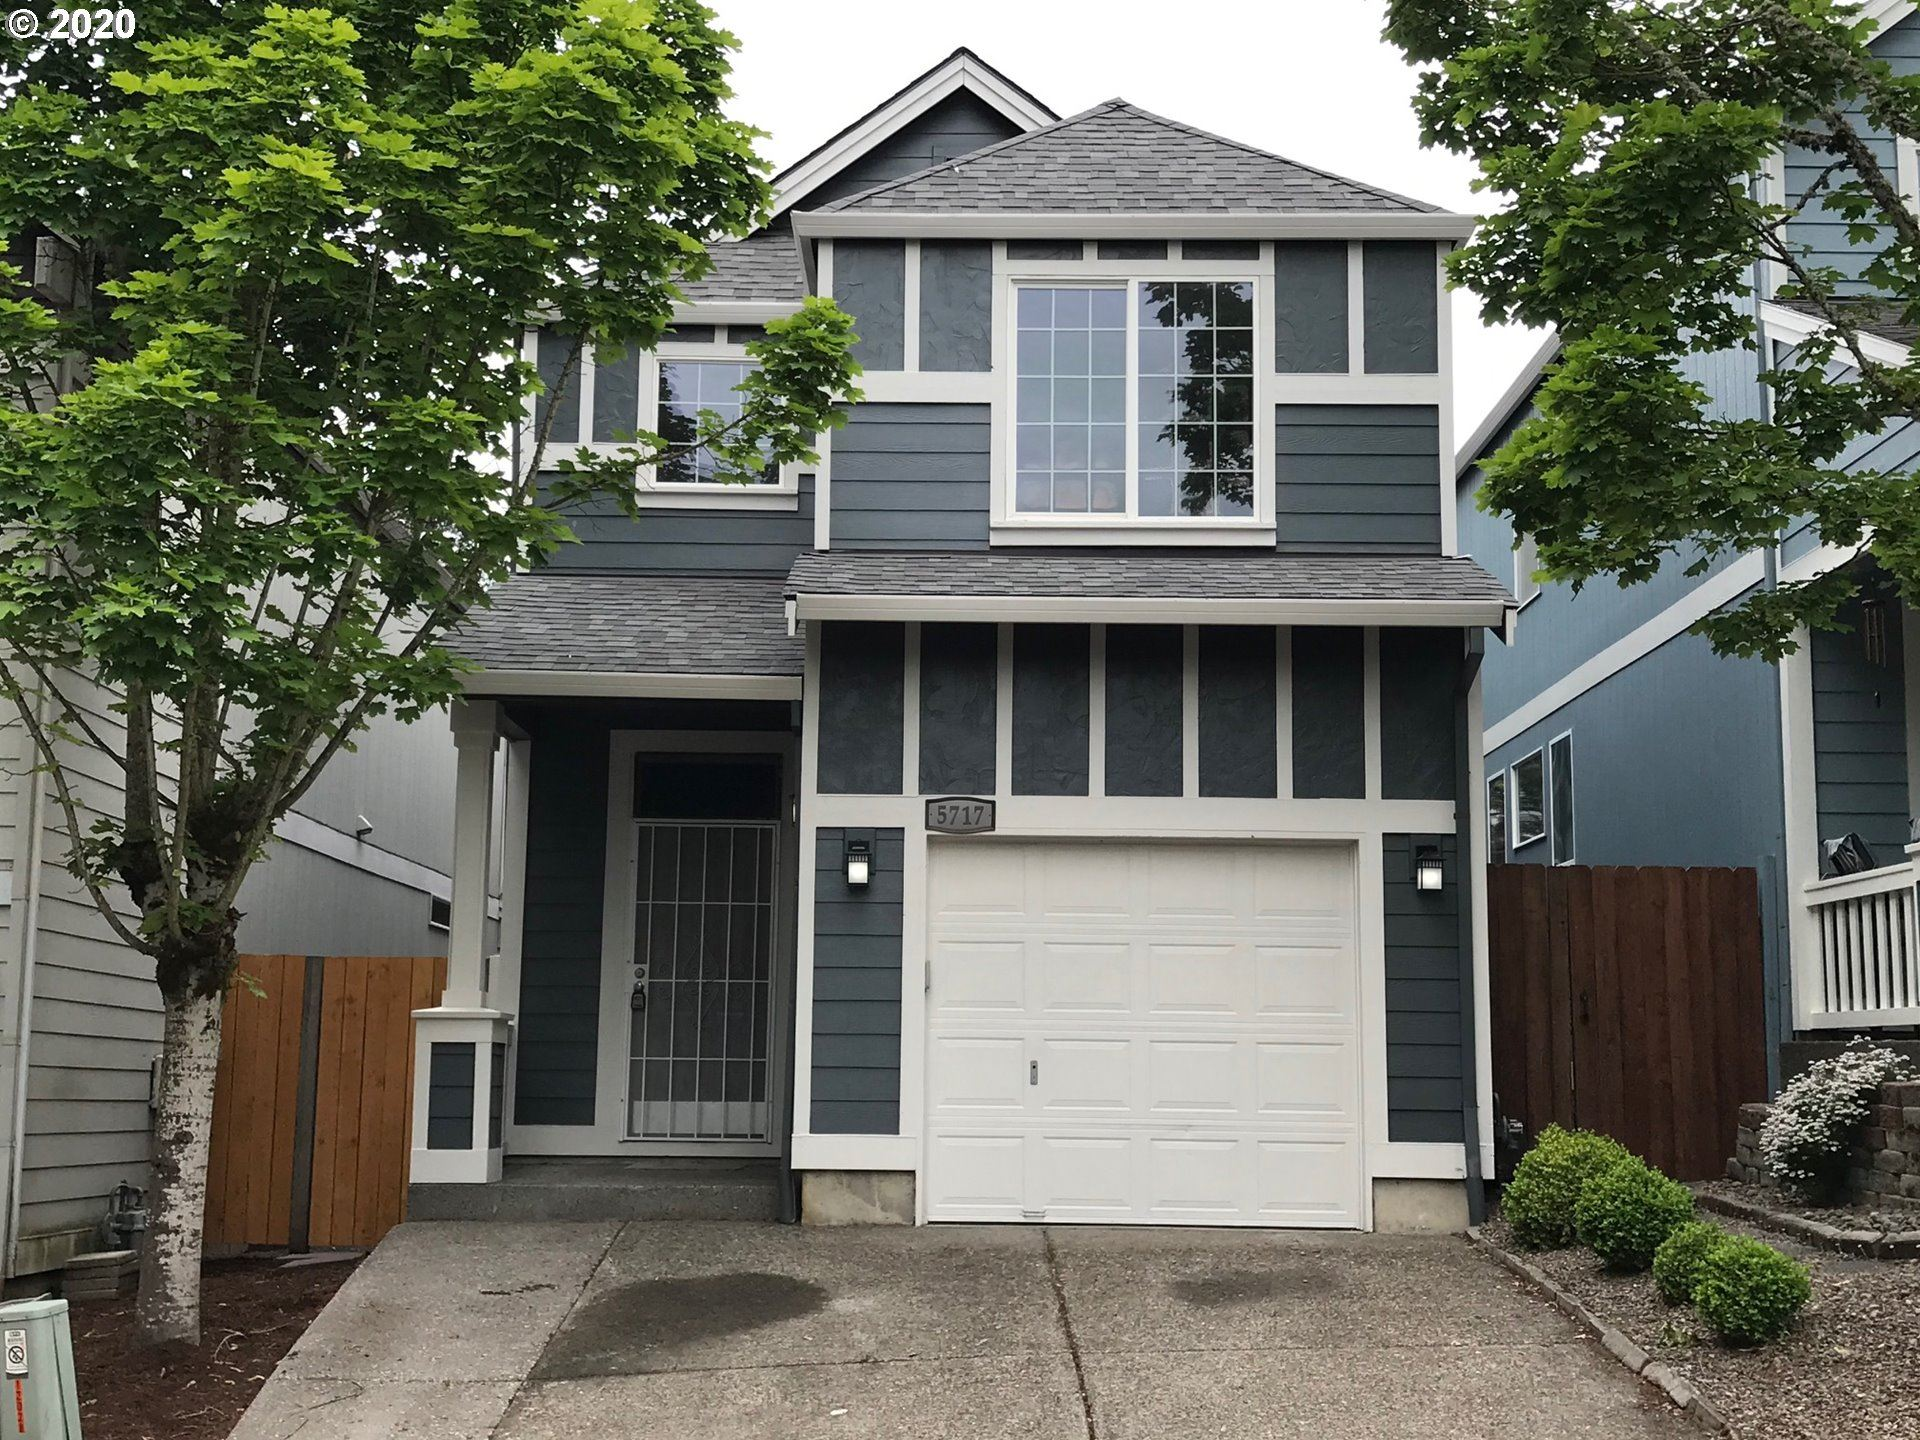 5717 NW 174TH AVE, Portland, OR 97229 - MLS#: 20413256